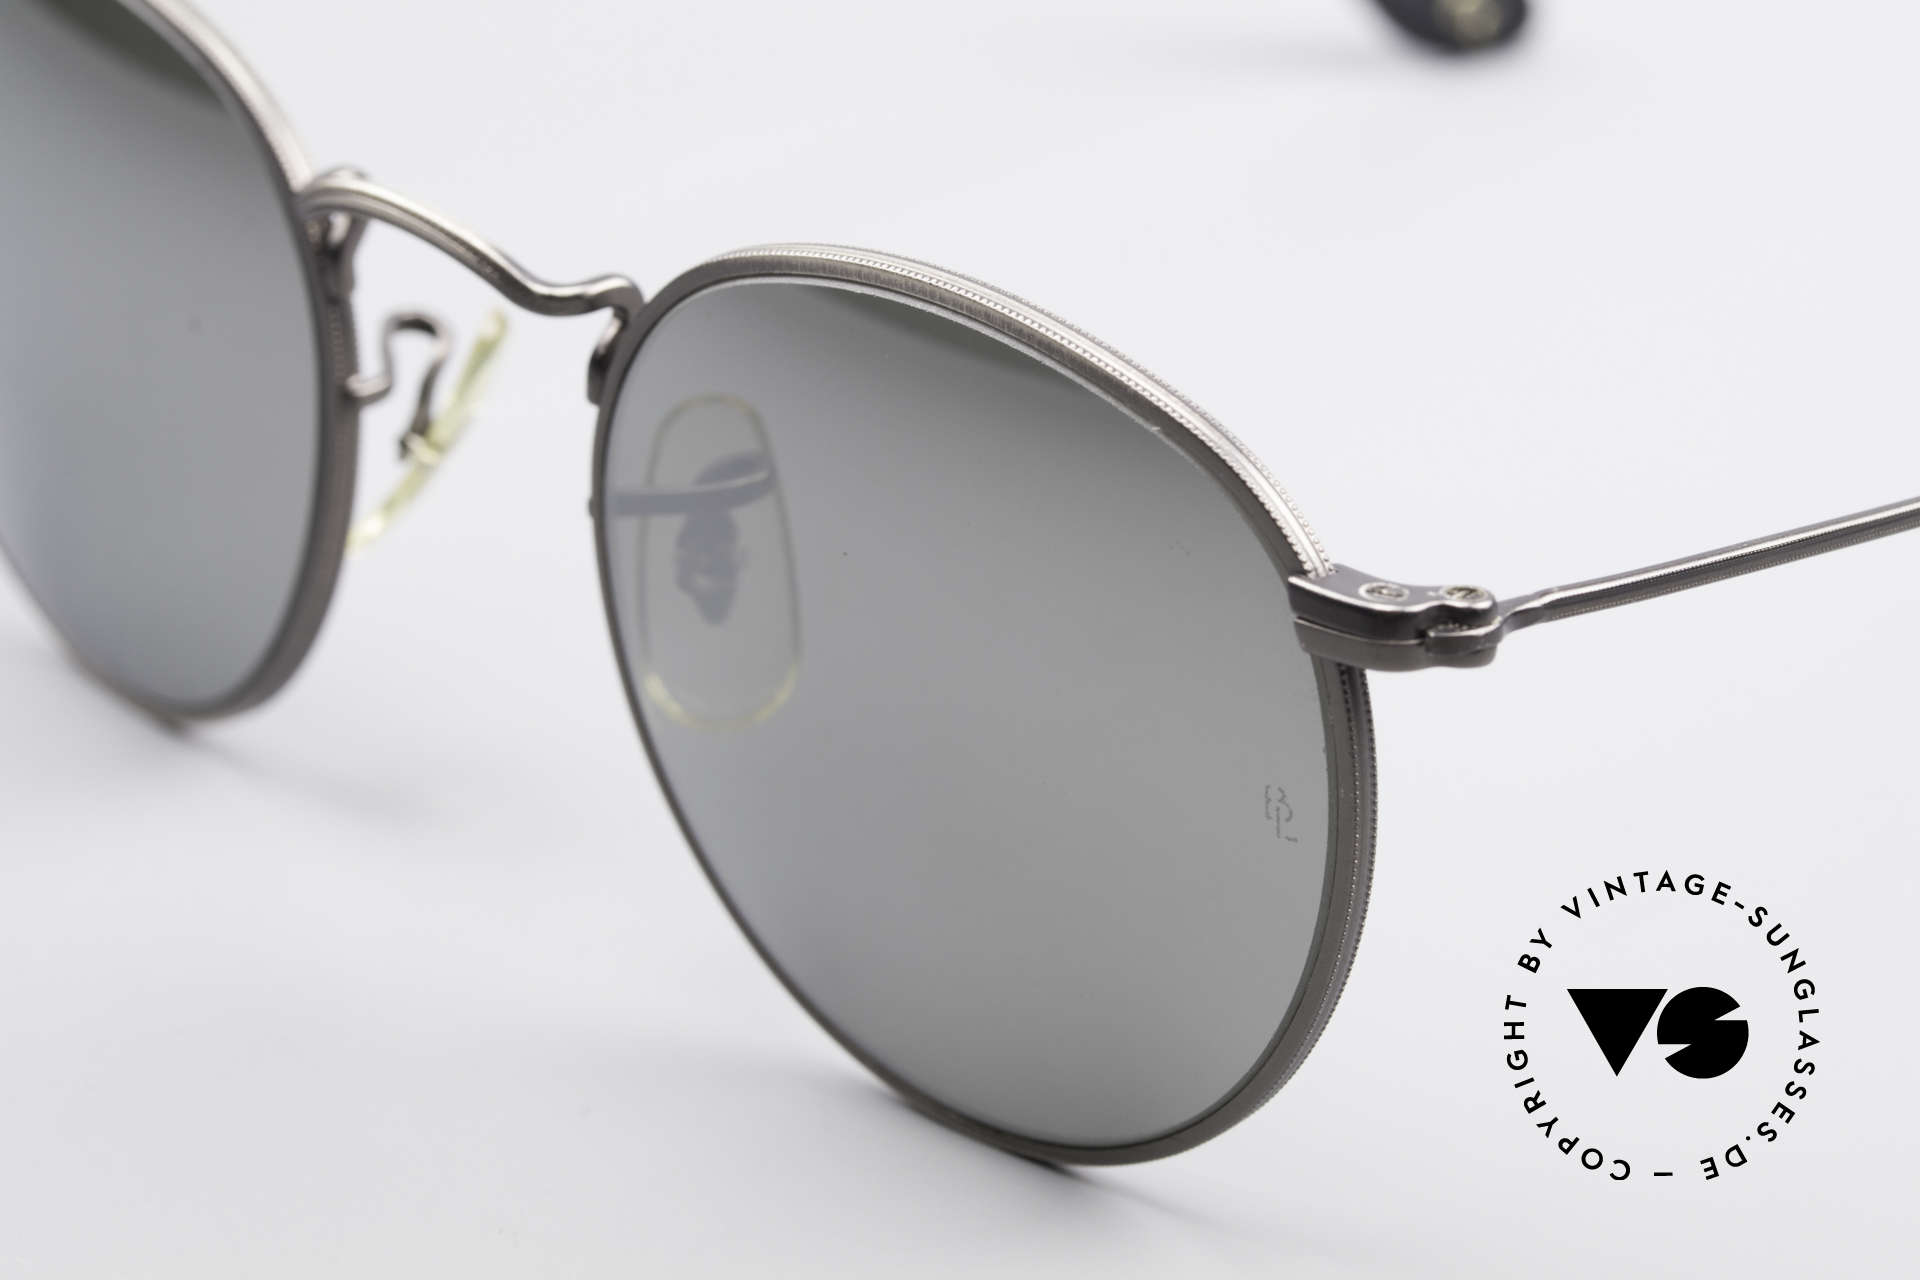 Ray Ban Round Metal 47 Mirrored B&L USA Sunglasses, unworn Bausch&Lomb sunglasses + an old B&L case, Made for Men and Women